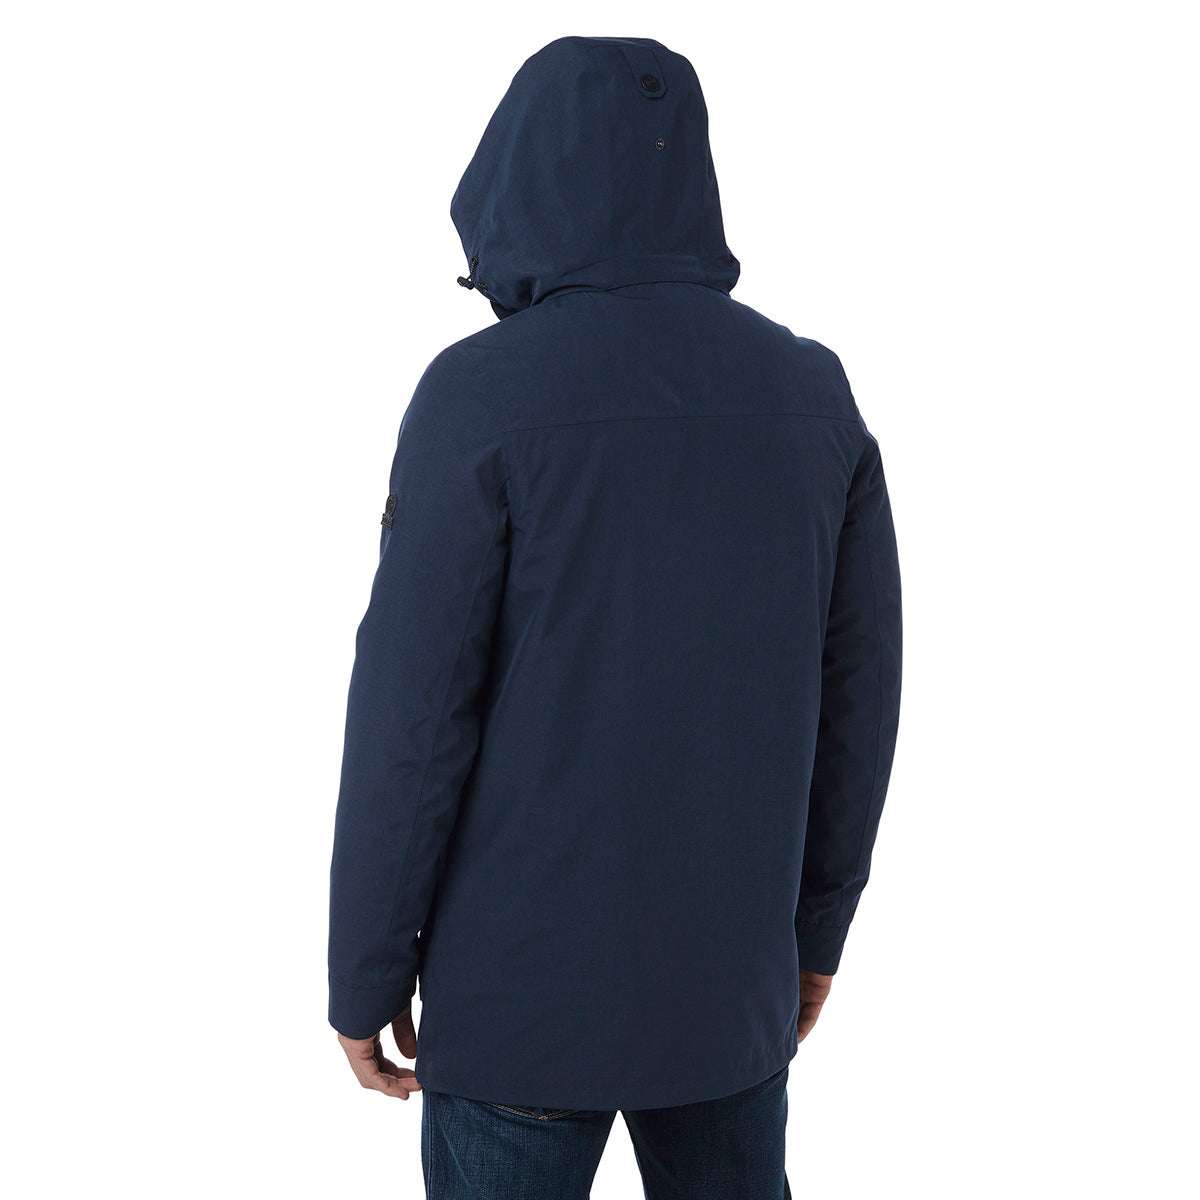 Arkle Mens Milatex 3-In-1 Jacket - Navy Marl image 4